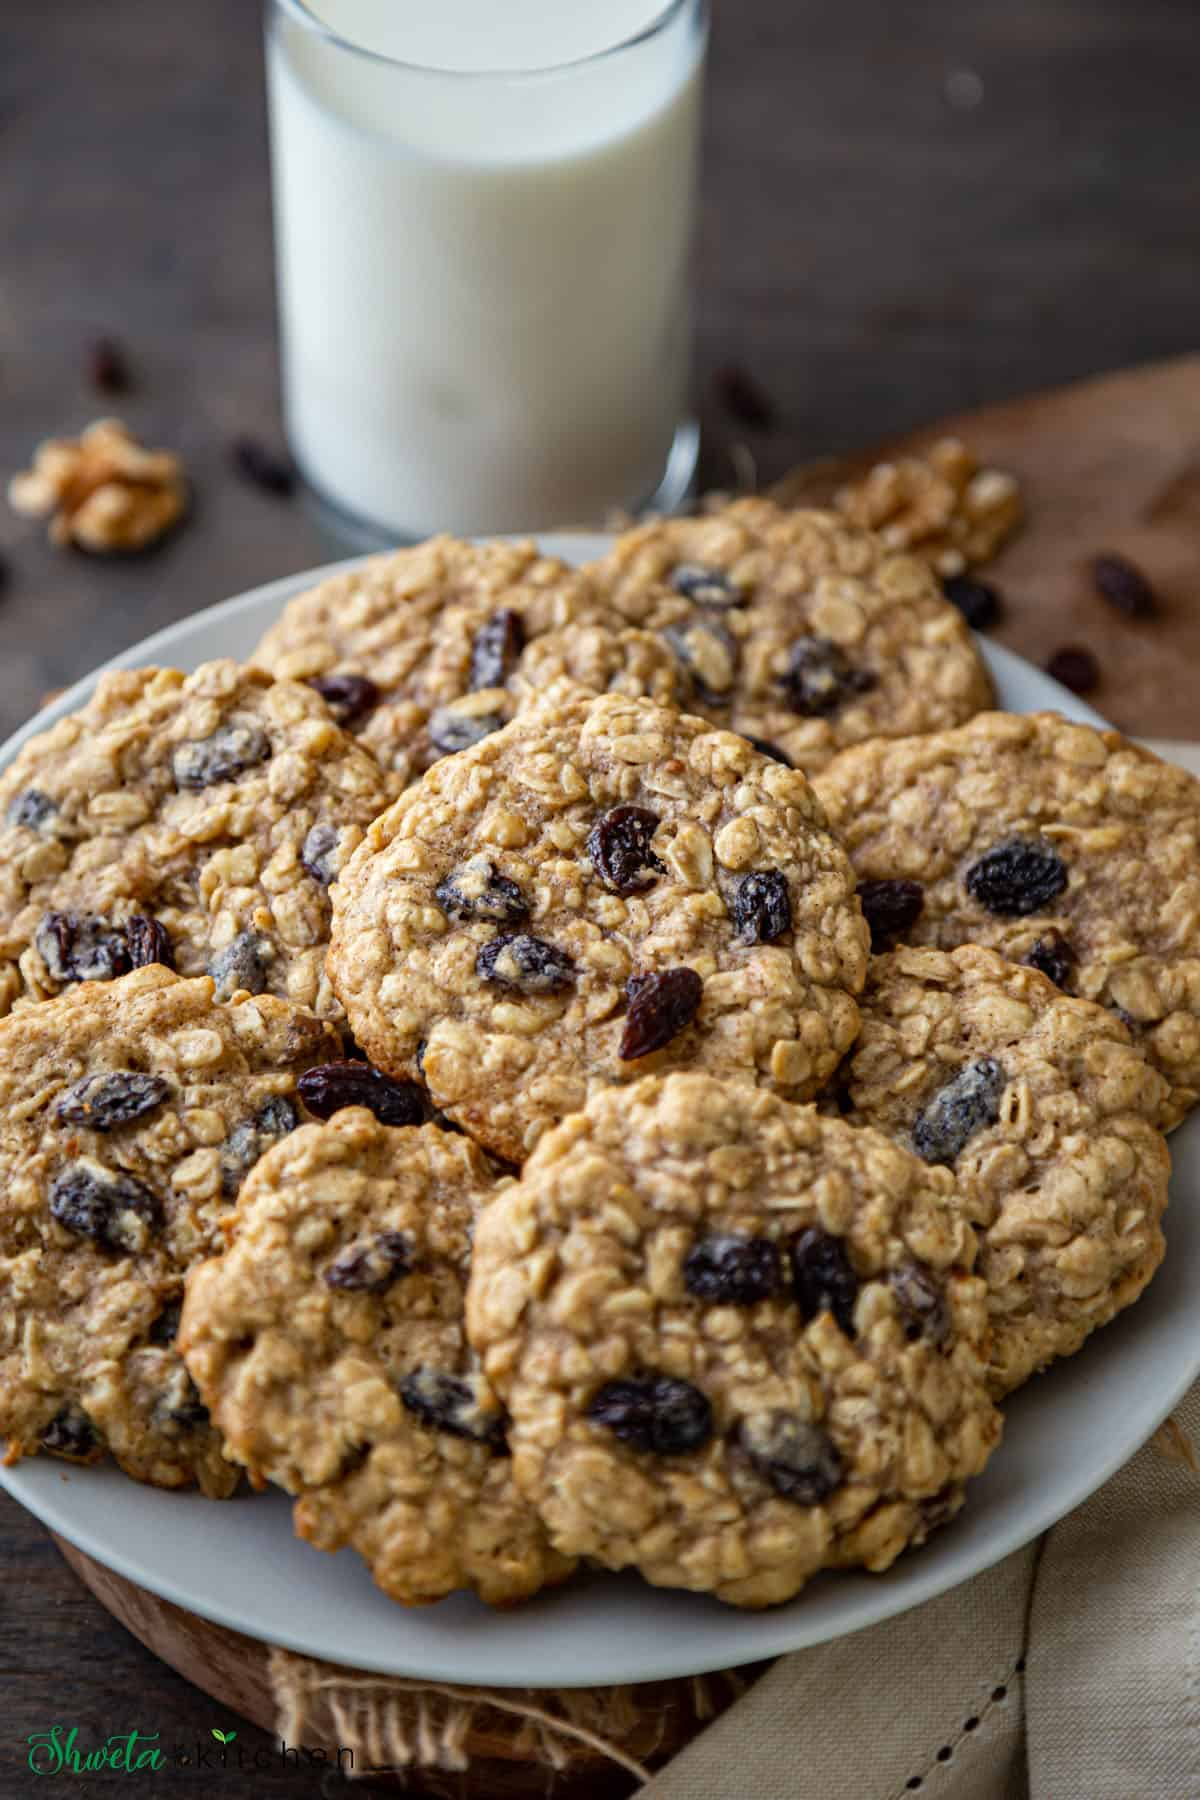 heap of Oatmeal Raisin Cookies on a plate with glass of milk in background